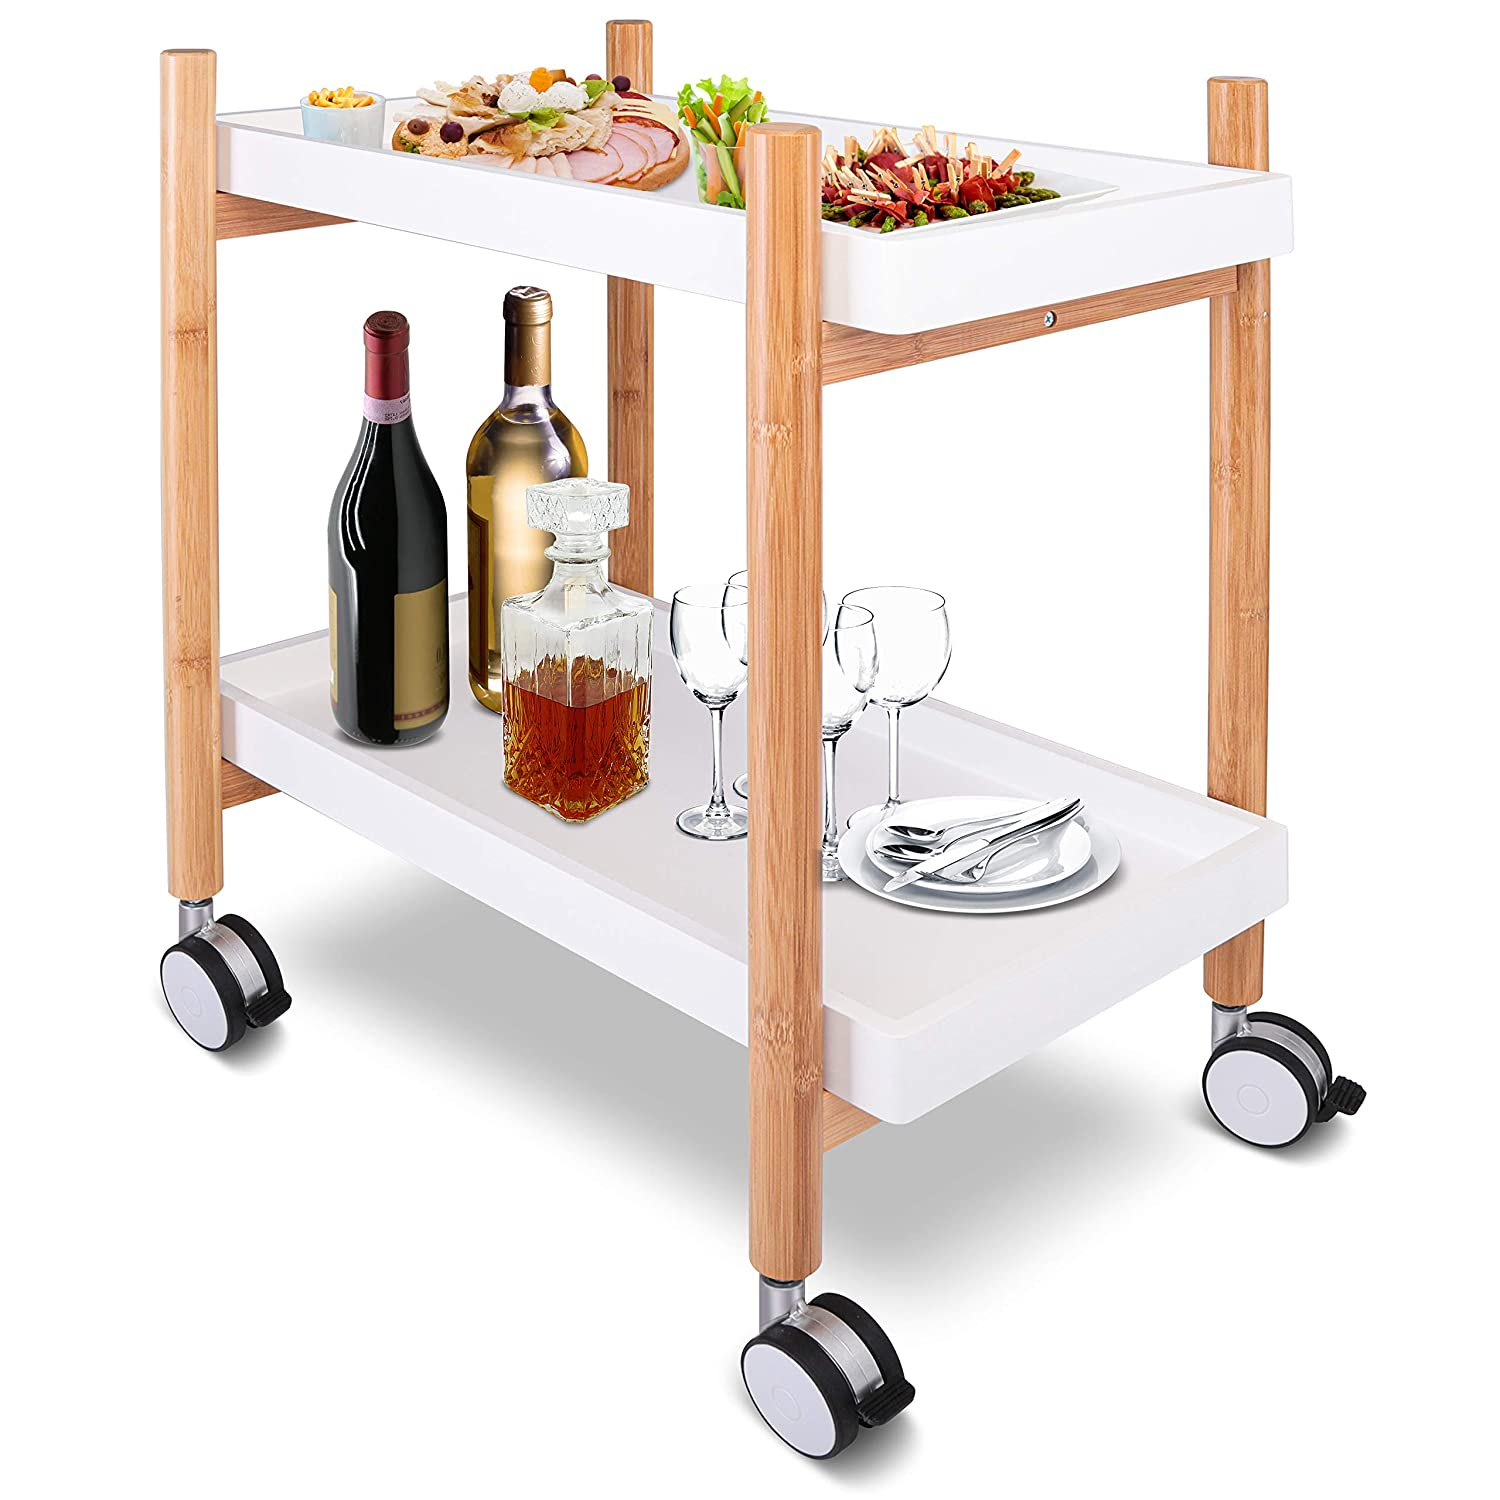 Rolling Home Bar Serving Cart - 2-Tier Mobile Kitchen Serving Trolley Carter Rolling Bar with Removable Trays and 4 Wheels - Coffee, Tea, Wine, Whiskey Holder Serving Cart - SereneLife SLSRVCRT400